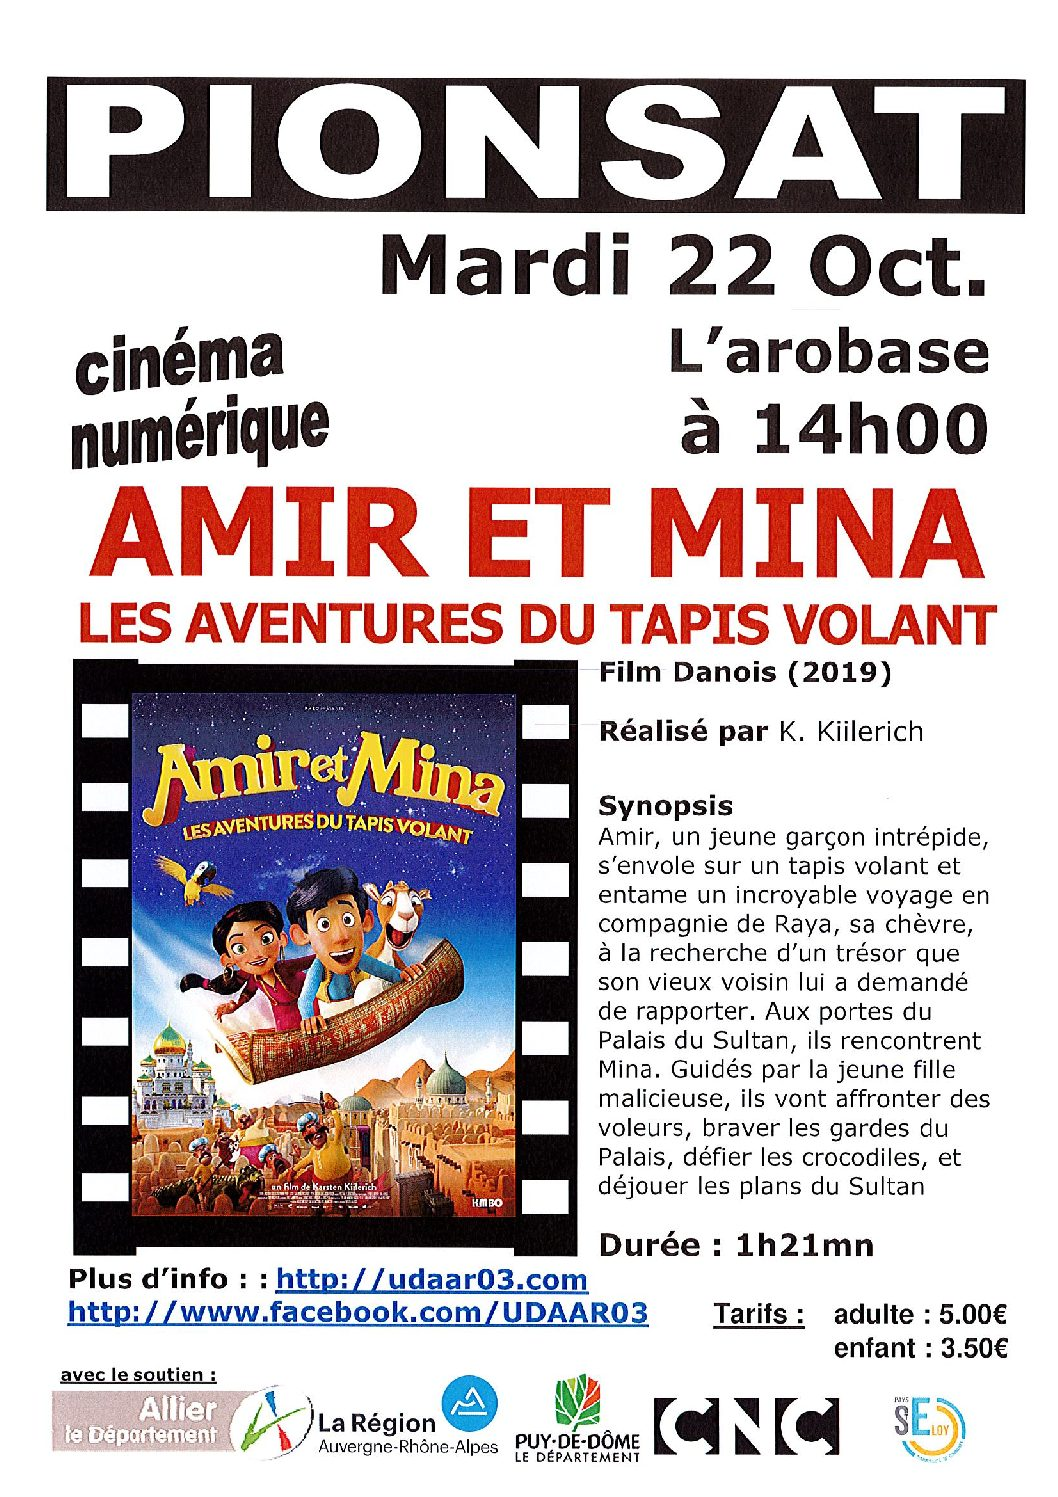 CINEMA DU 22 OCTOBRE A 14 H